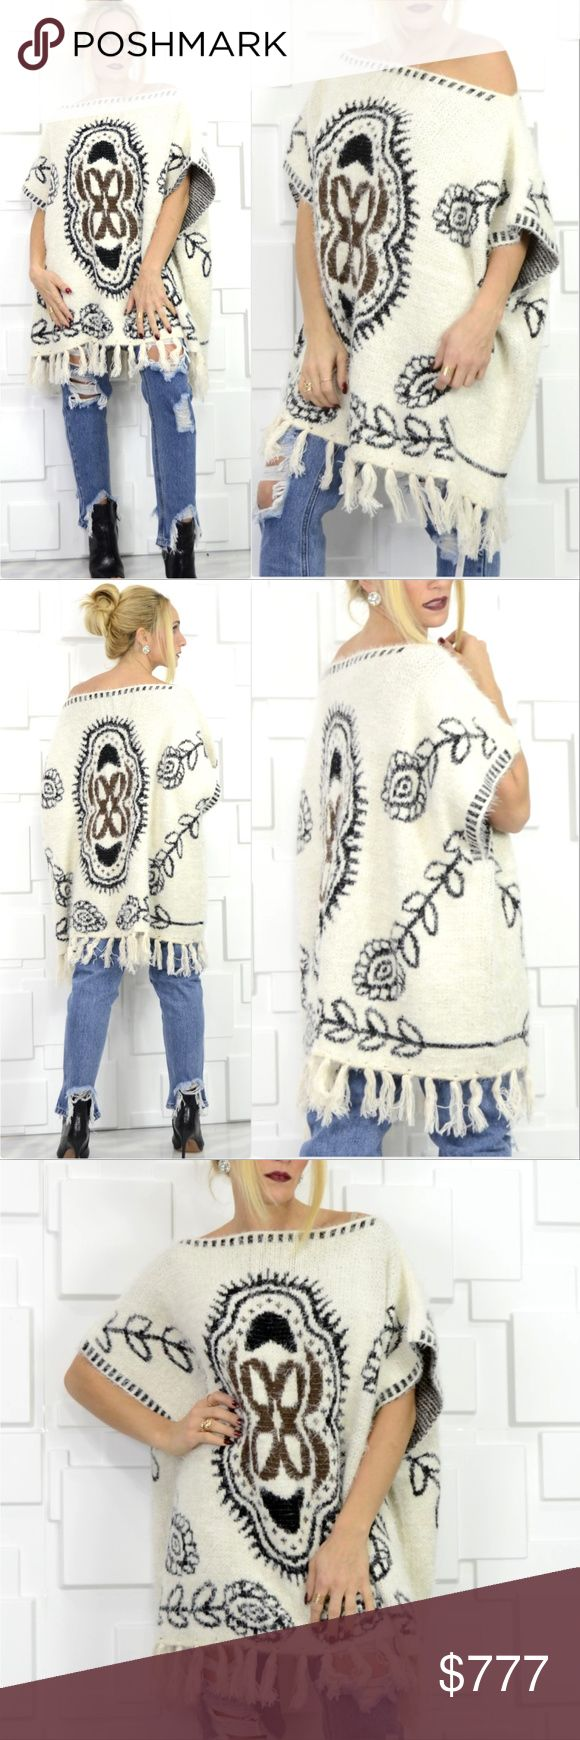 ULTRA SOFT PONCHO/SHRUG BRAND NEW BOUTIQUE ITEM PRICING IS FIRM  Check out this fabulous ULTRA SOFT poncho/sweater with fun multi colored print, tassel detailed hemline and arm holes. Pair with jeans or leggings, a long sleeved top and boots for a fab look!!! This will be a staple idea for your fall/ winter wardrobe or would also make a great gift idea!  ONE SIZE 100% ACRYLIC  winter fall gift present holiday party event christmas thanksgiving cardigan wrap shrug sweaters . Sweaters Shrugs…